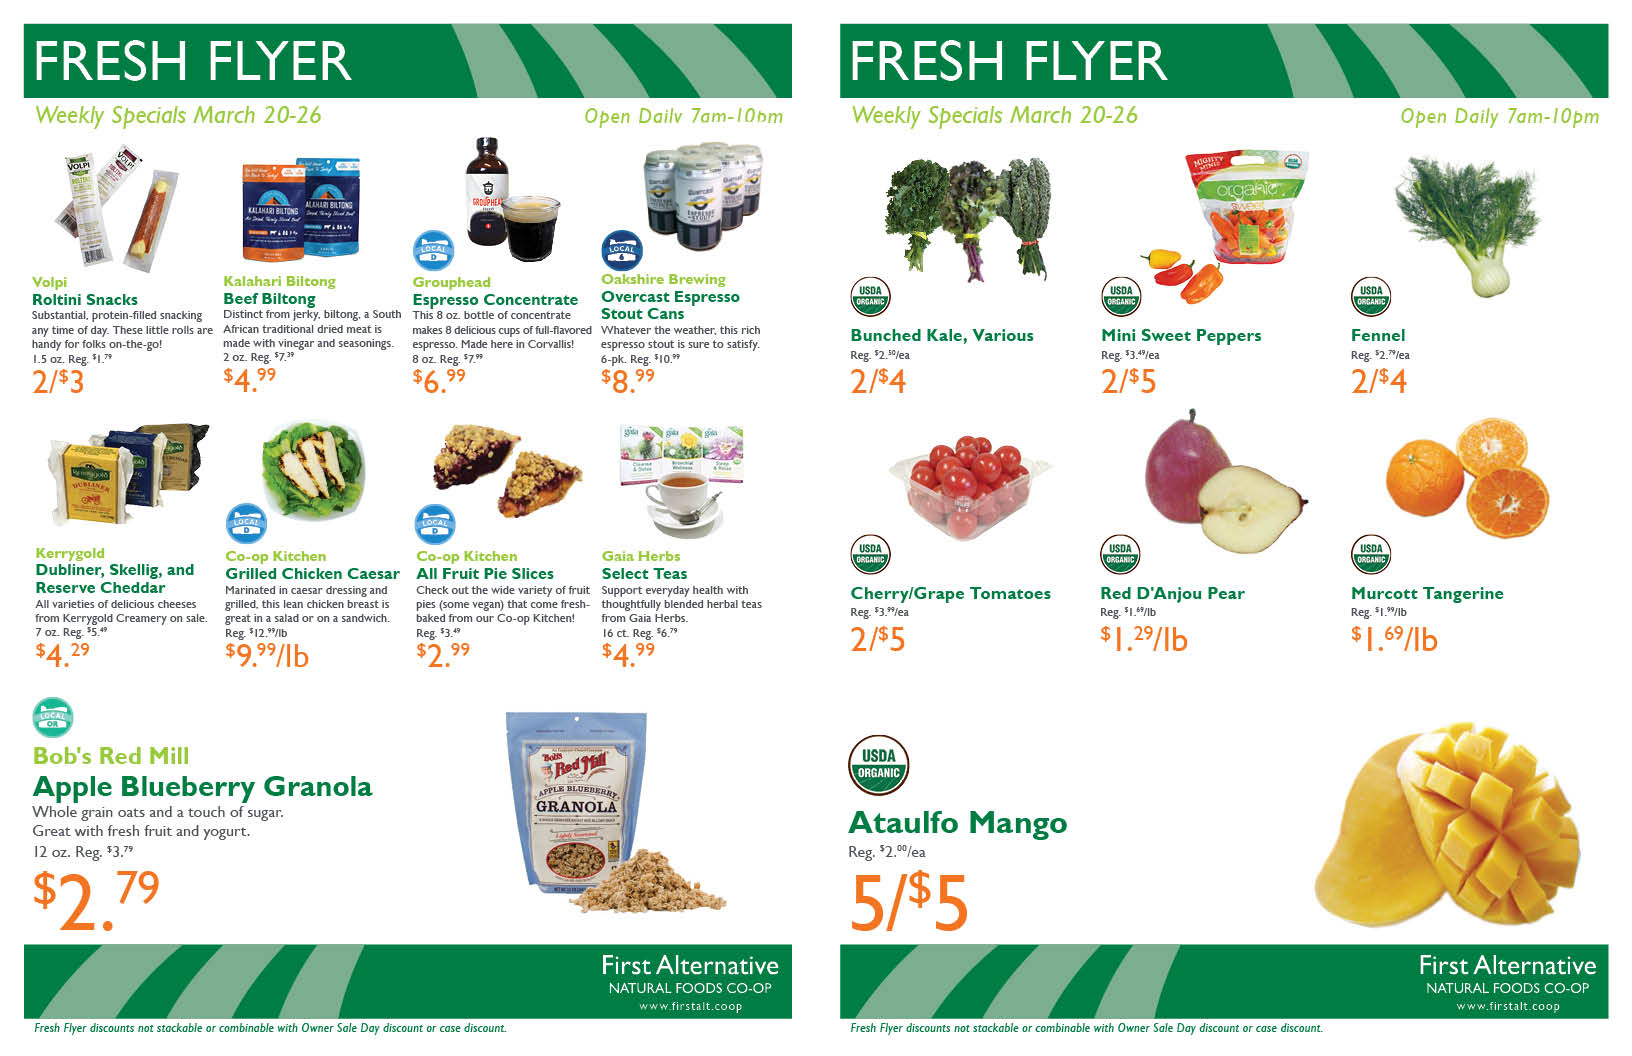 First Alternative Co-op Fresh Flyer March 20-26